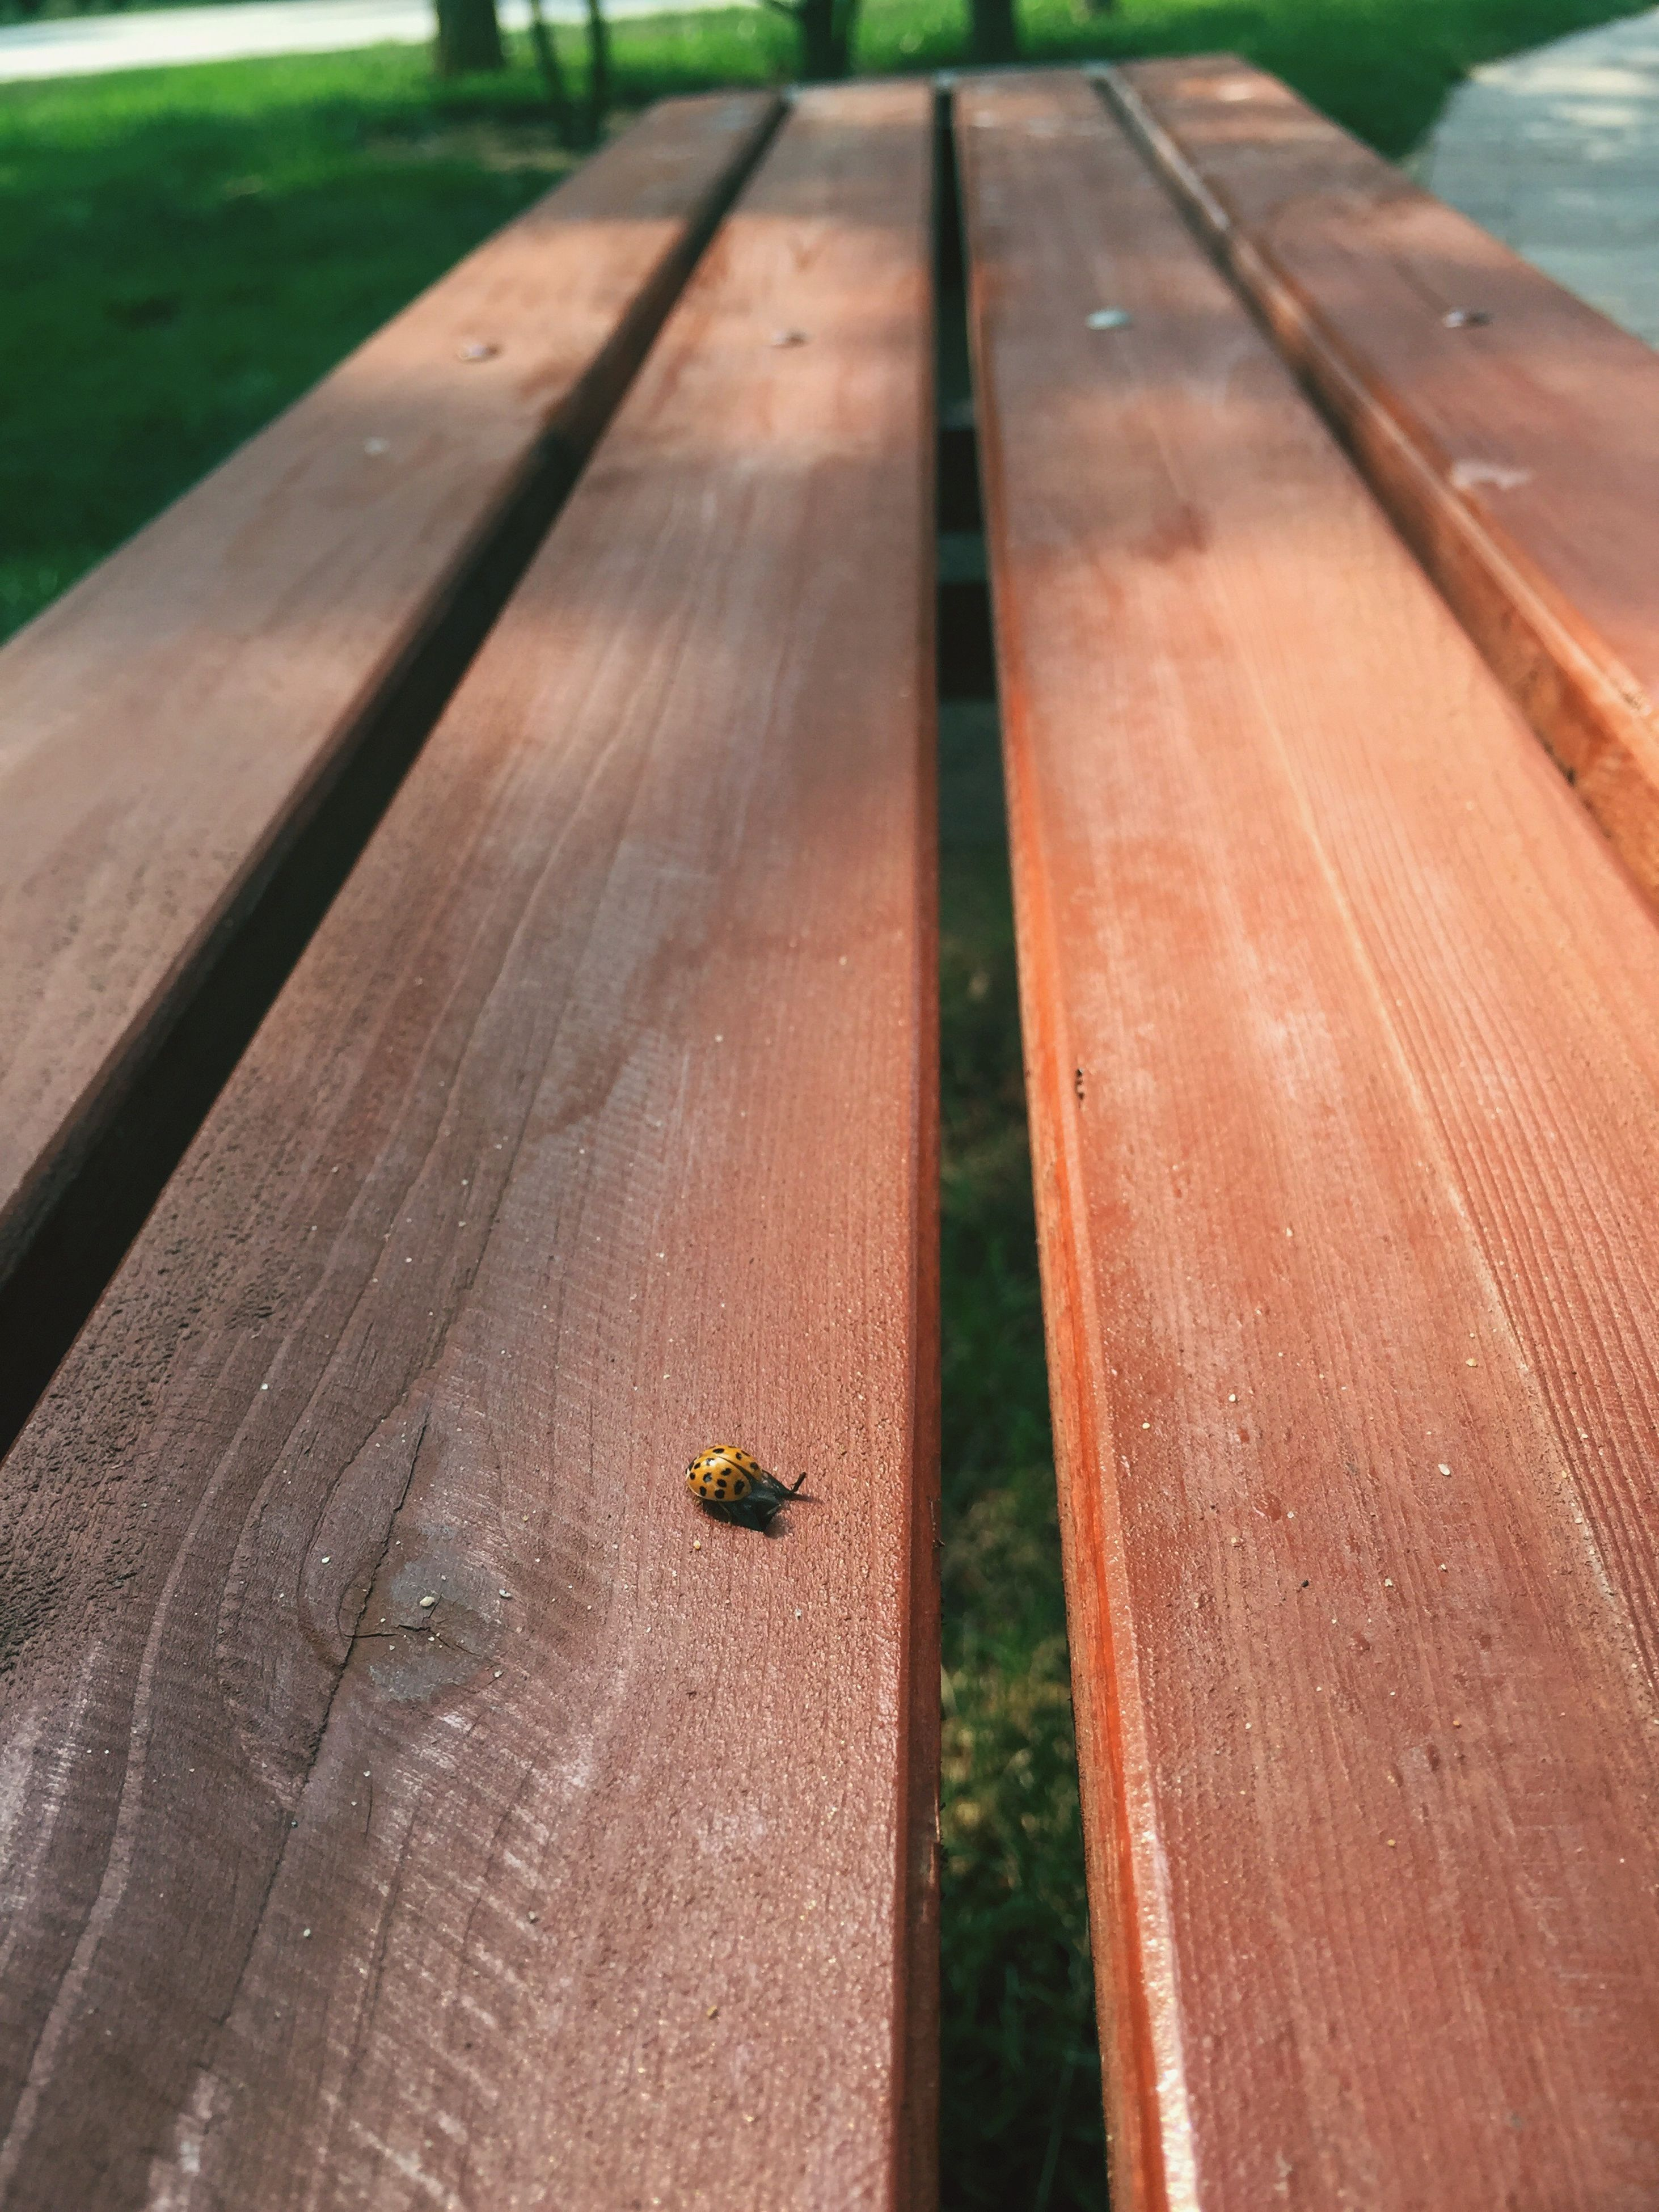 insect, wood - material, wooden, day, outdoors, nature, selective focus, no people, close-up, focus on foreground, animal wildlife, green color, elevated view, beauty in nature